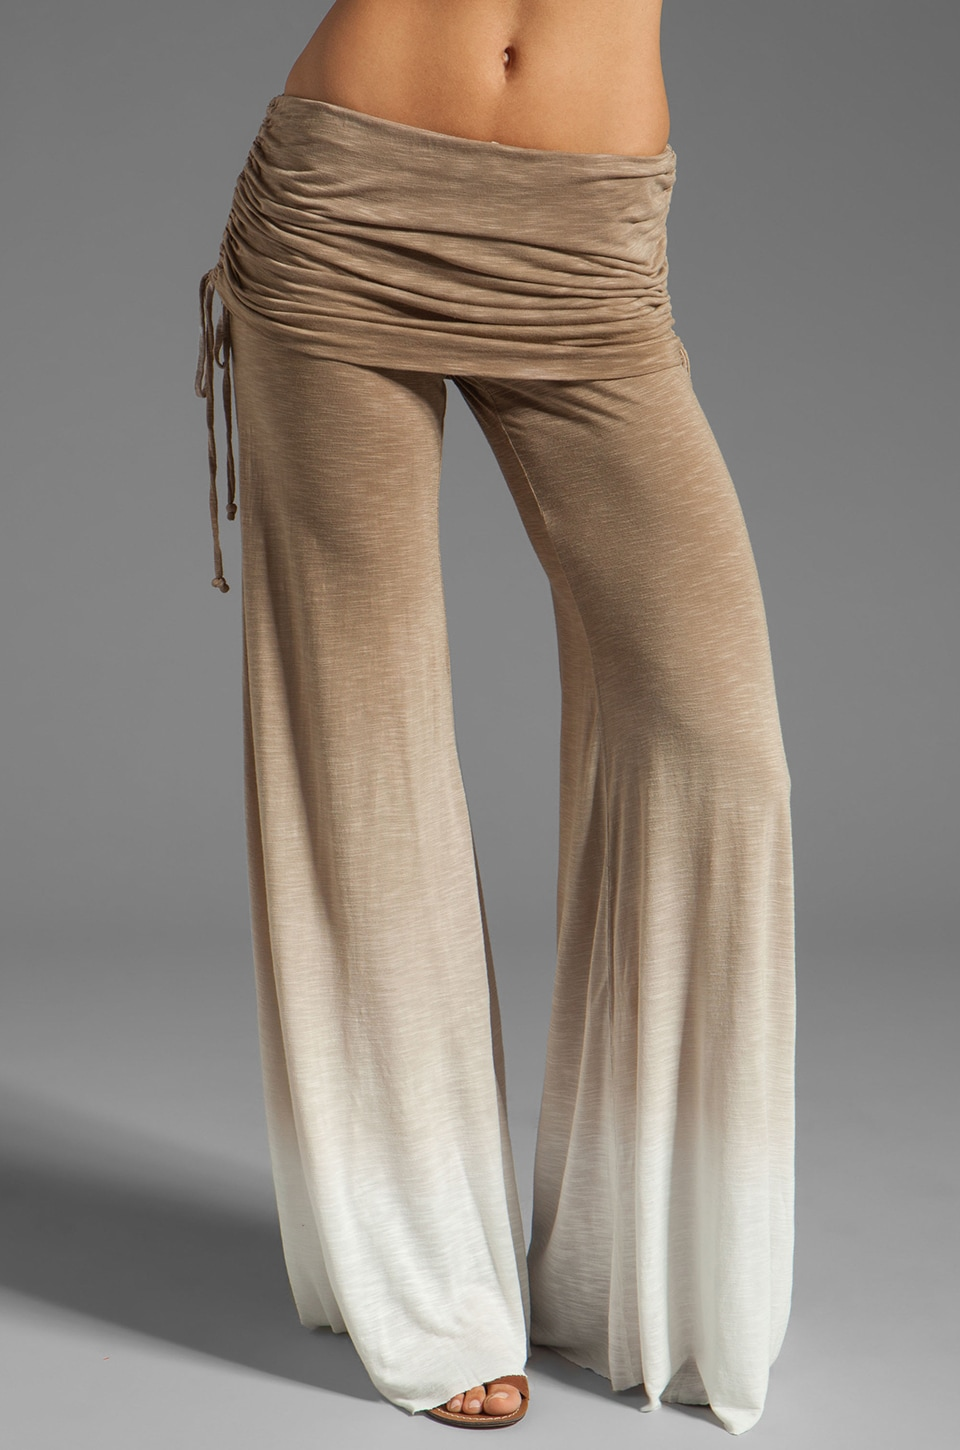 Young, Fabulous & Broke Sierra Pant in Tan Ombre